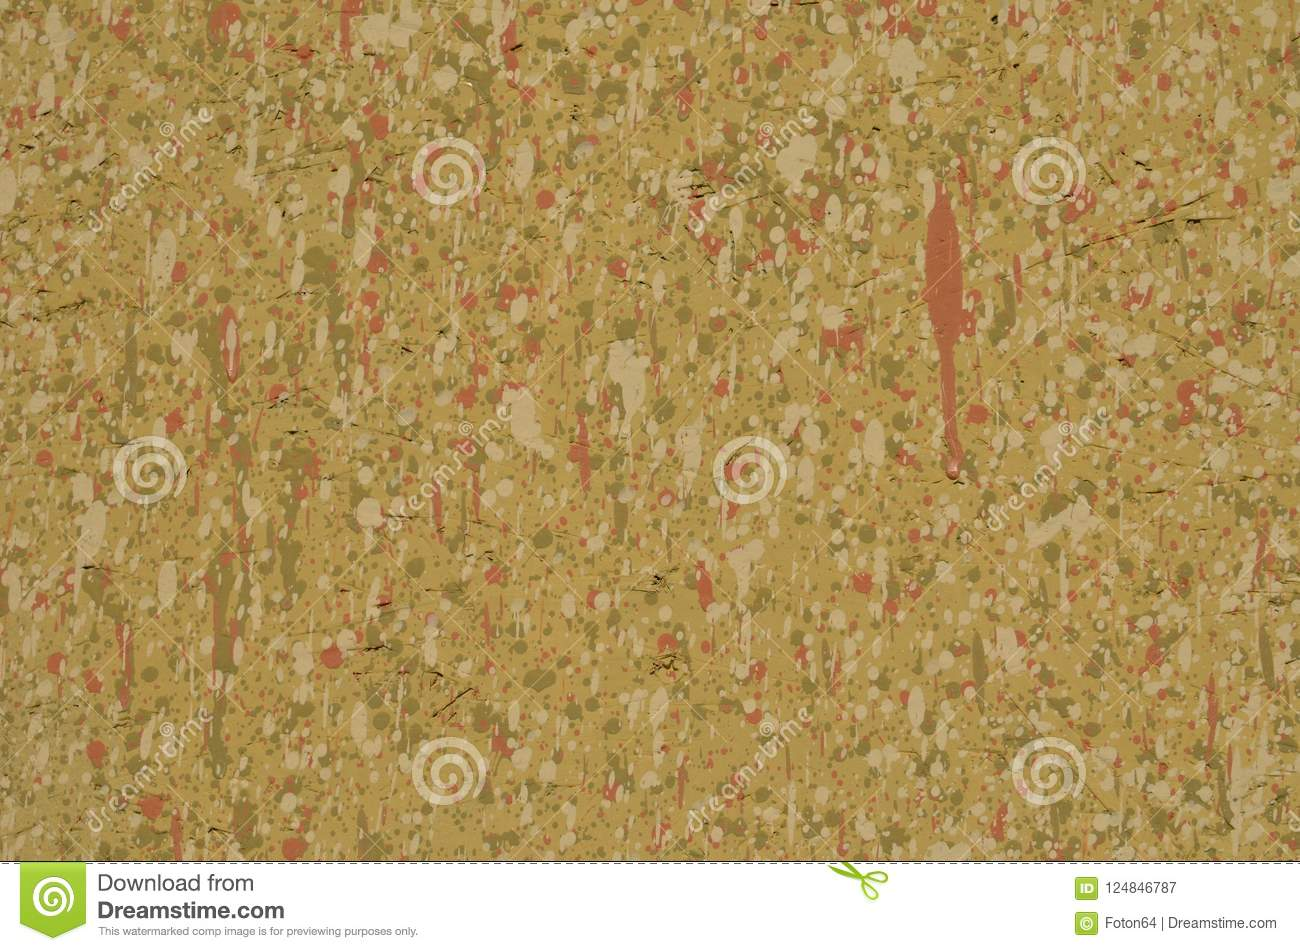 7a1659582500 Chipboard Full Of Leaking Paint Spots Stock Image - Image of leak ...